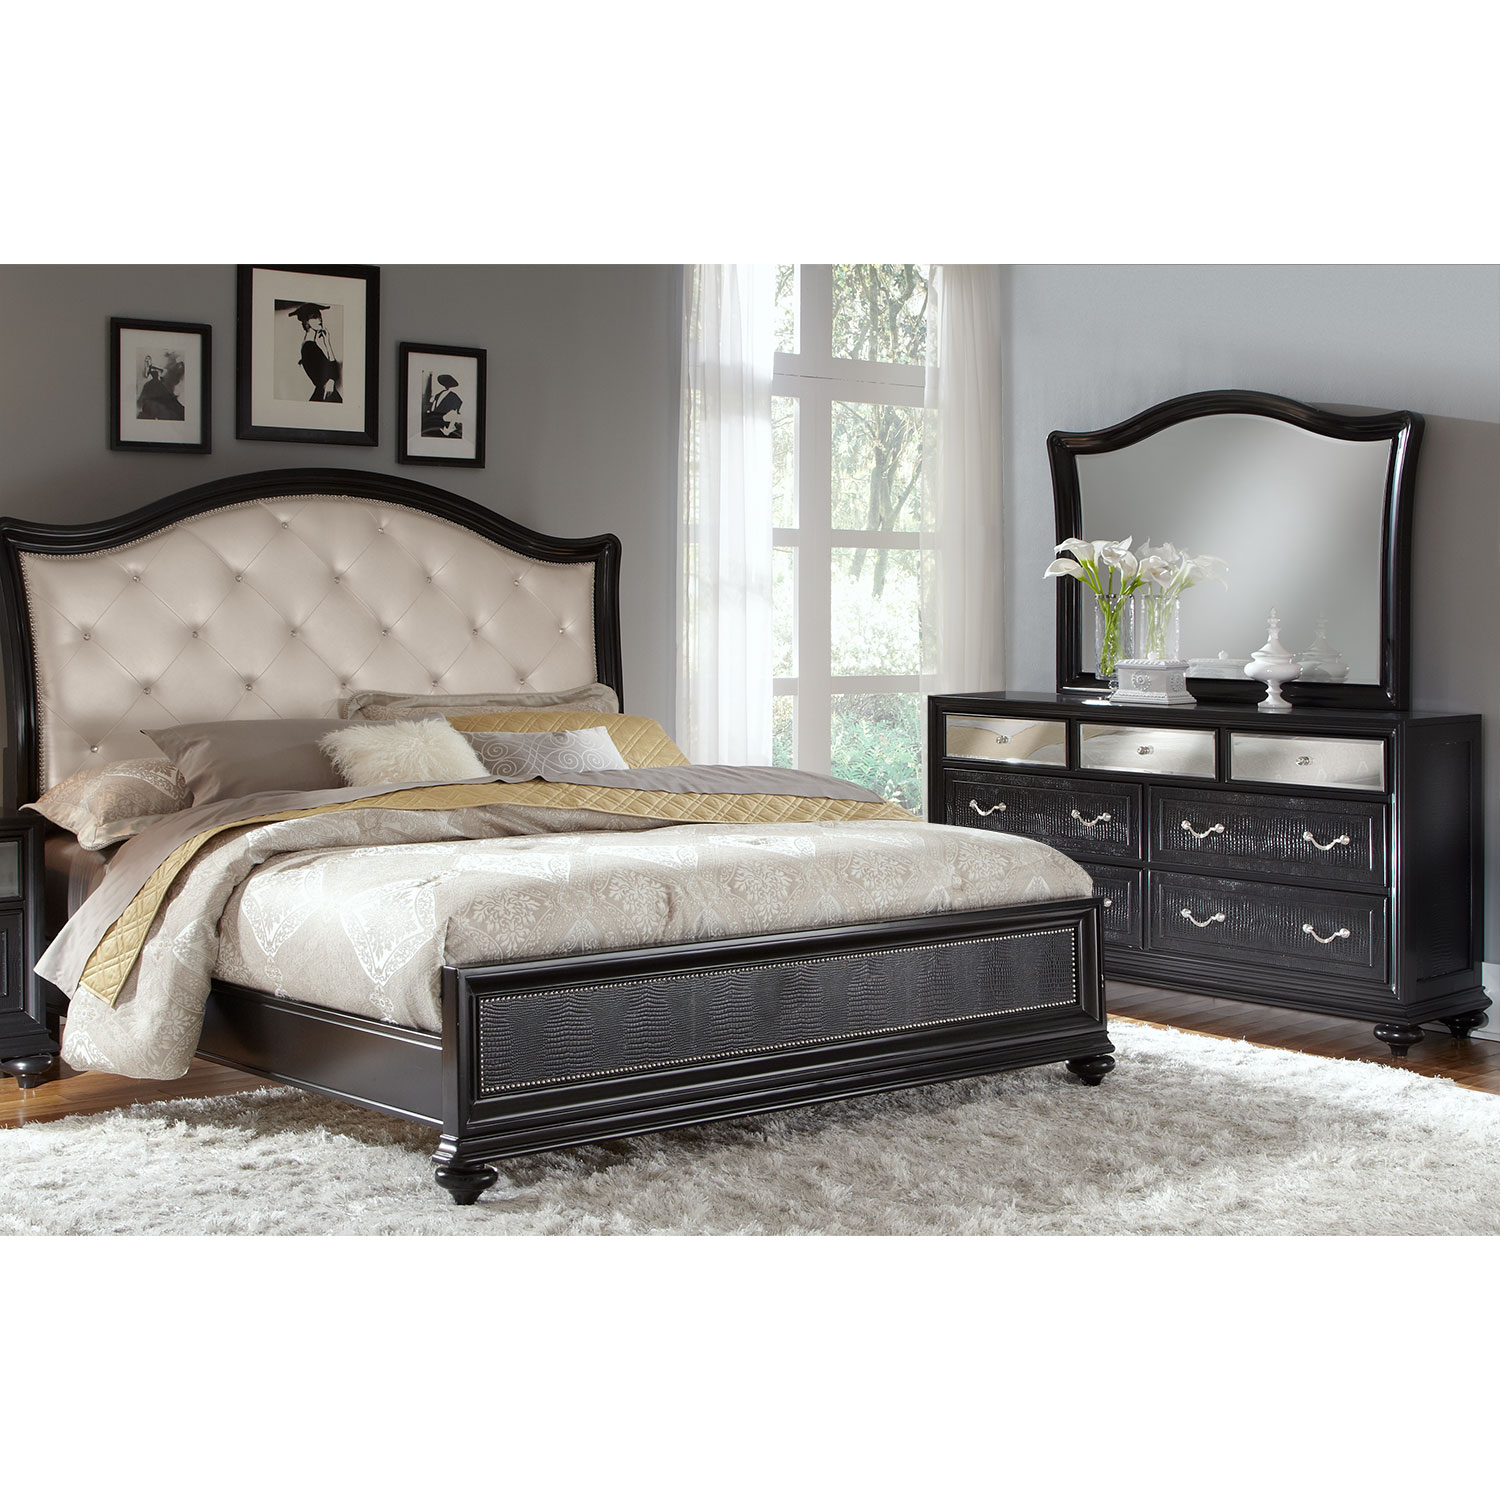 city furniture bedroom set. Hover to zoom Marilyn 5 Piece King Bedroom Set  Ebony Value City Furniture